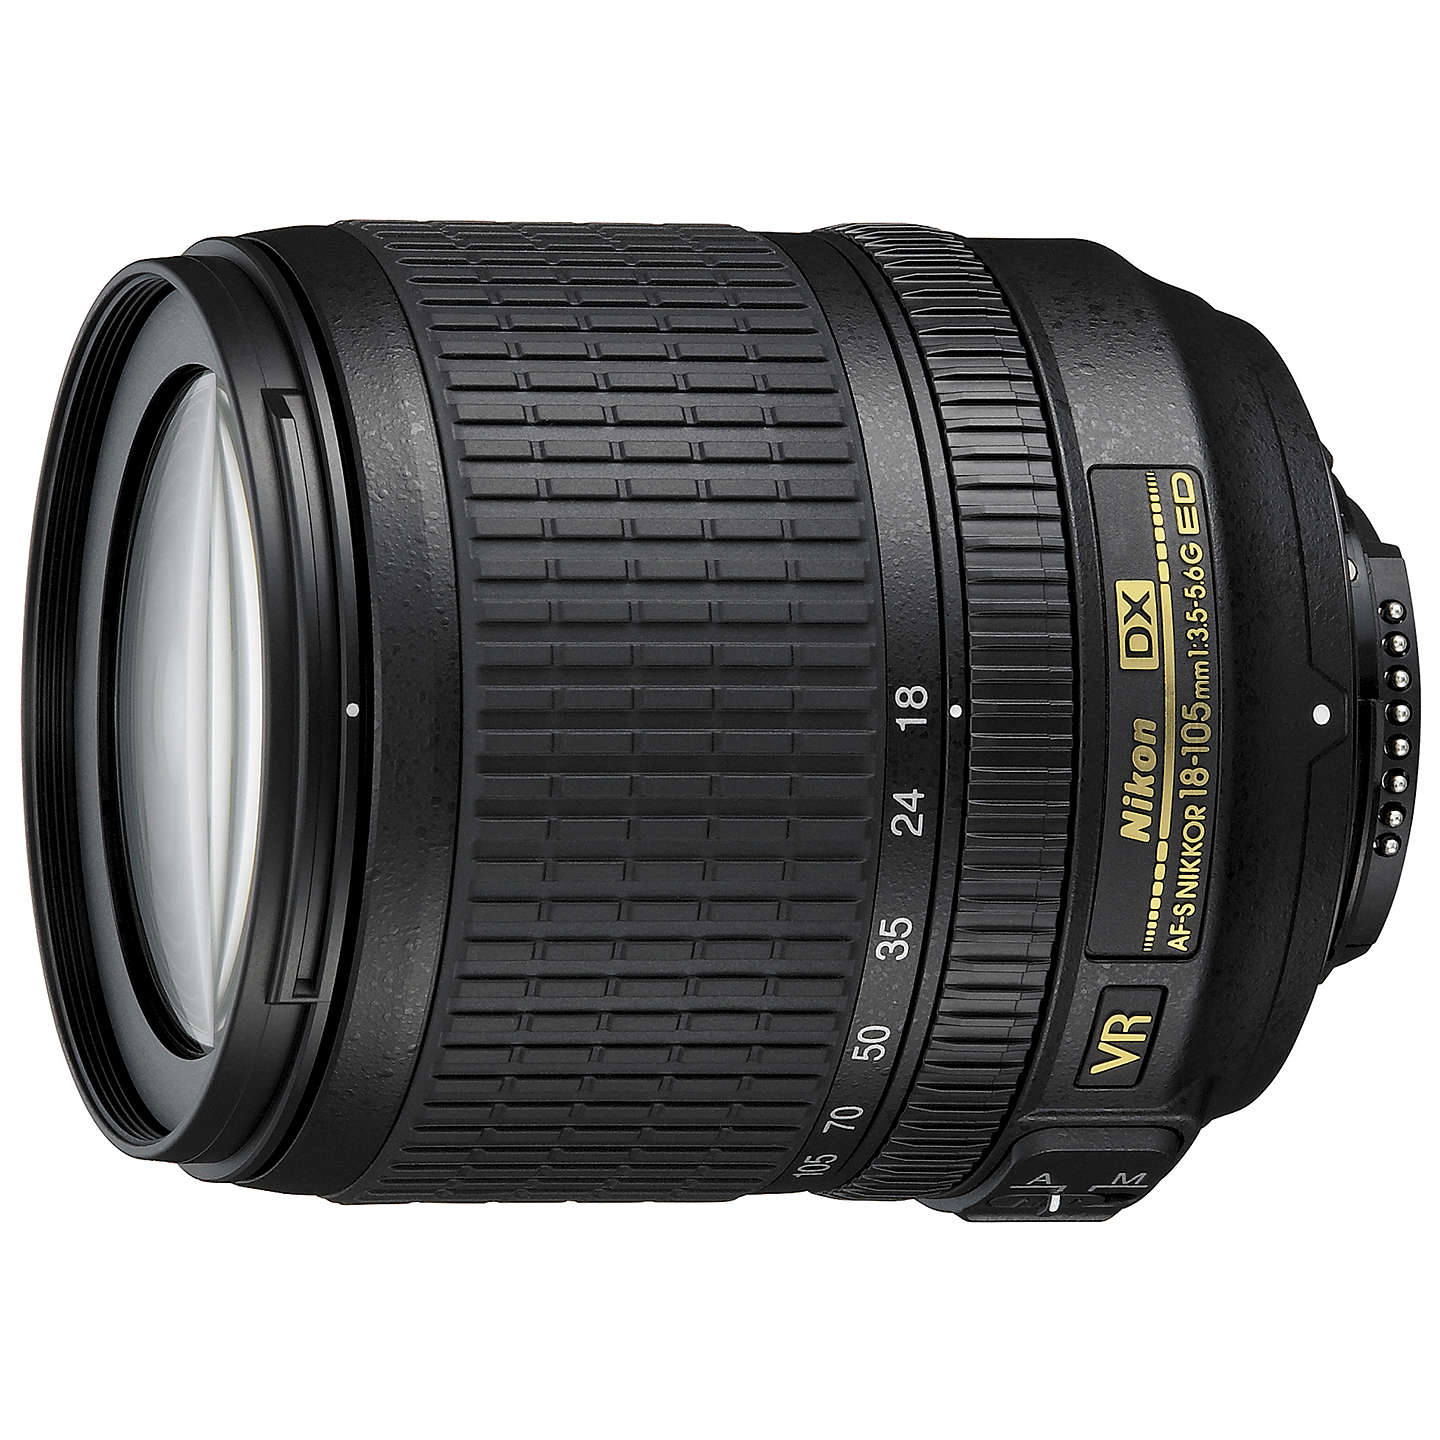 "BuyNikon D5300 Digital SLR Camera with 18-105mm VR Zoom Lens, HD 1080p, 24.2MP, Wi-Fi, 3.2"" Screen Online at johnlewis.com"